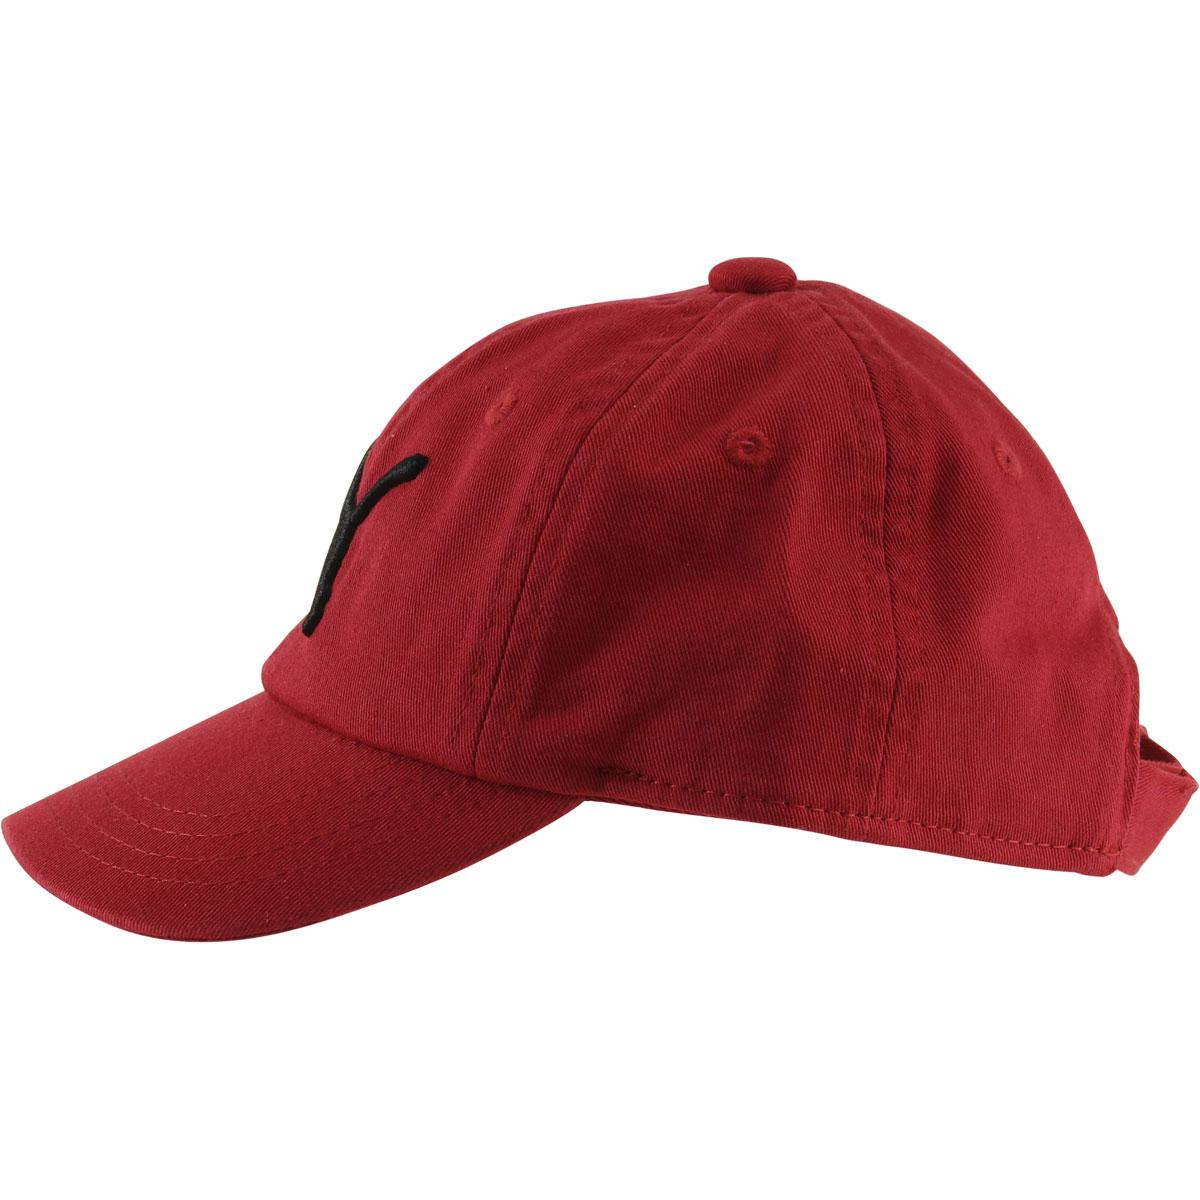 d44ba93d0cb Puma Toddler Boy s Evercat Podium Cotton Baseball Cap Hat by Puma. 12345